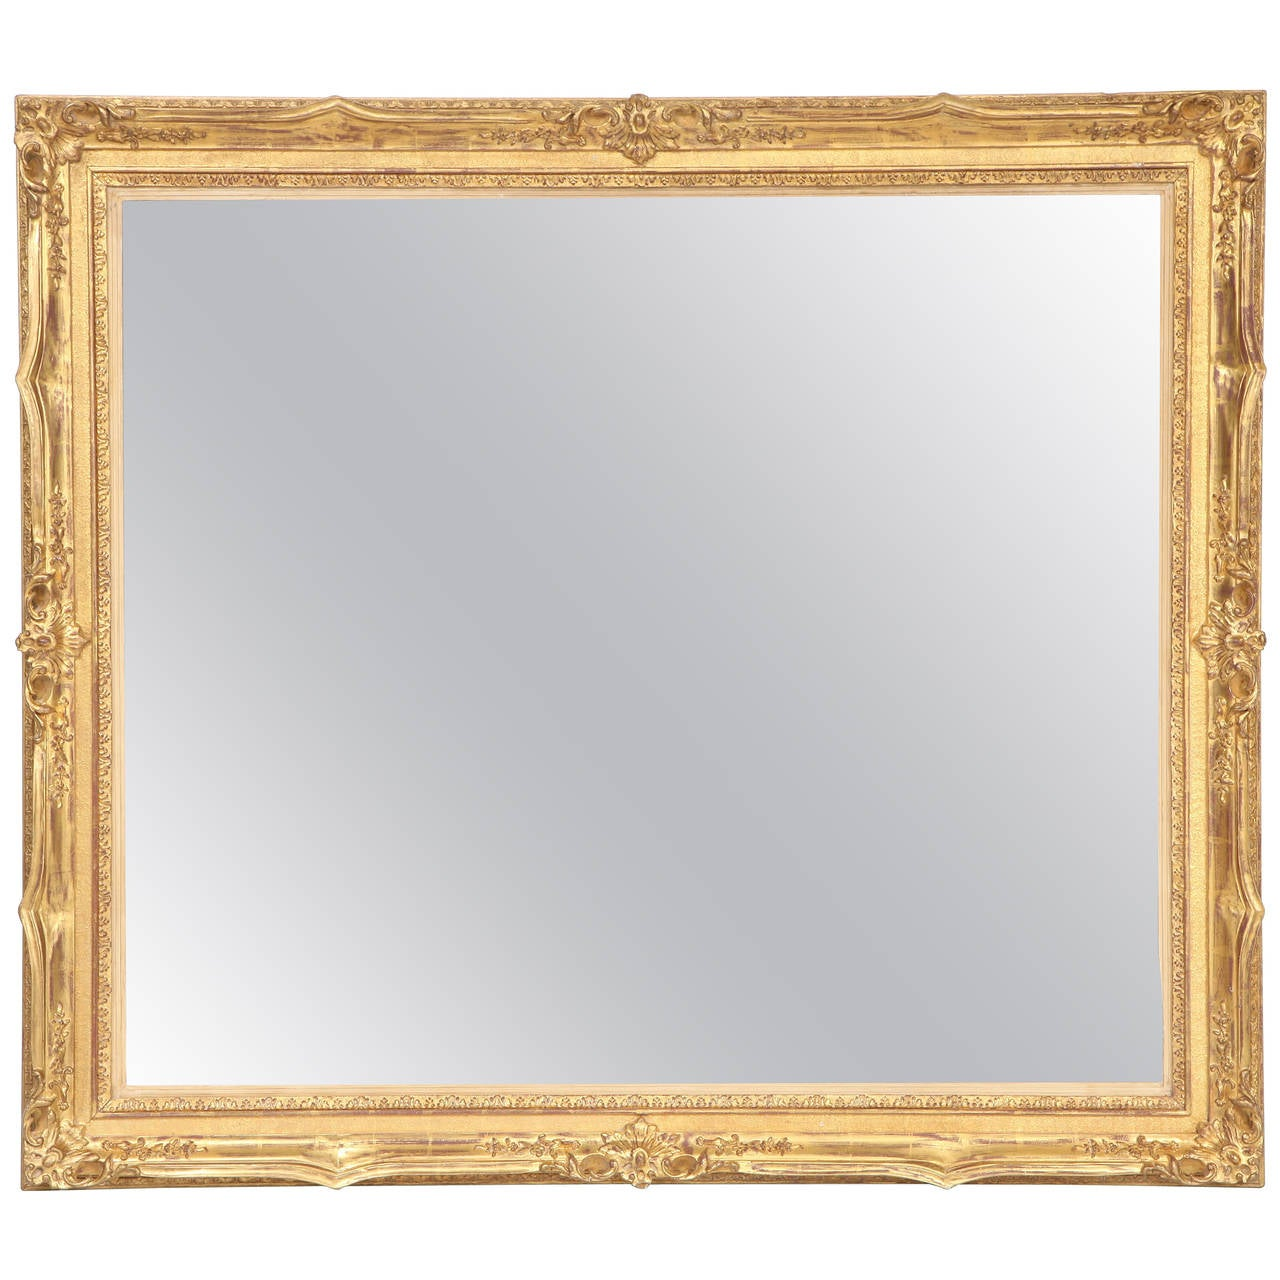 Large antique mirror for sale at 1stdibs for Mirrors for sale